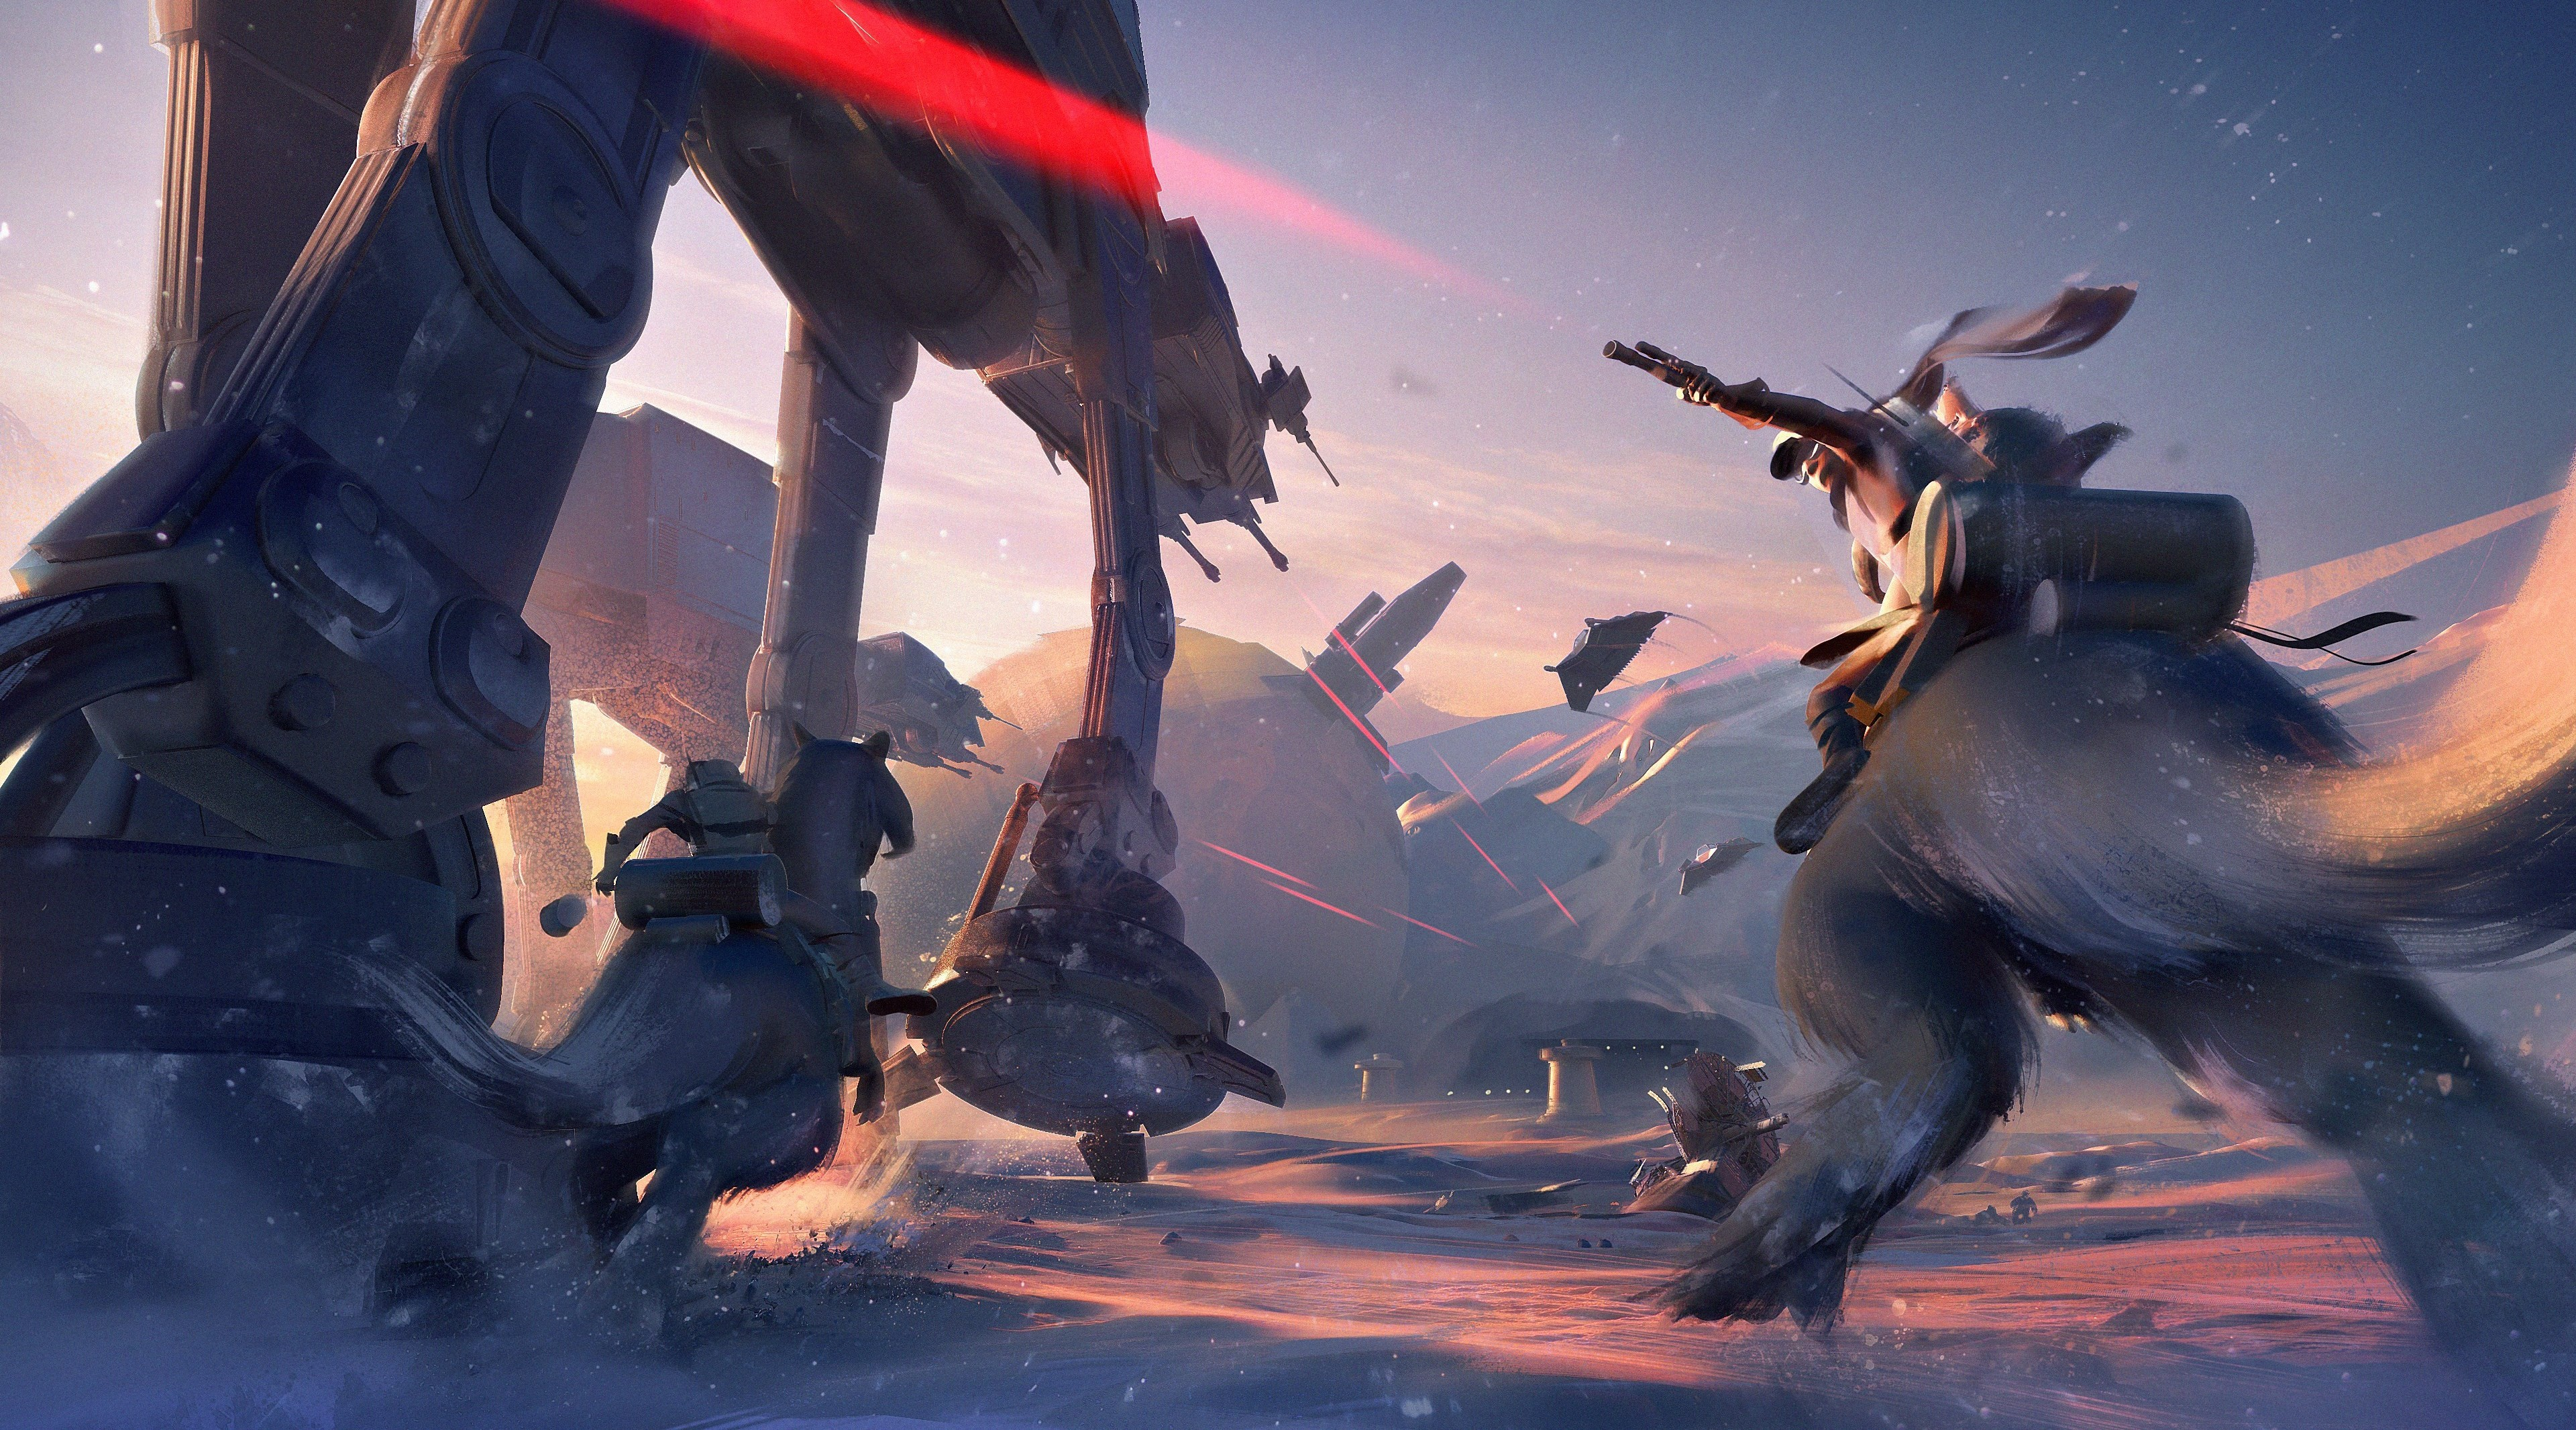 Star Wars Battlefront Ii 2017 Wallpapers Pictures Images